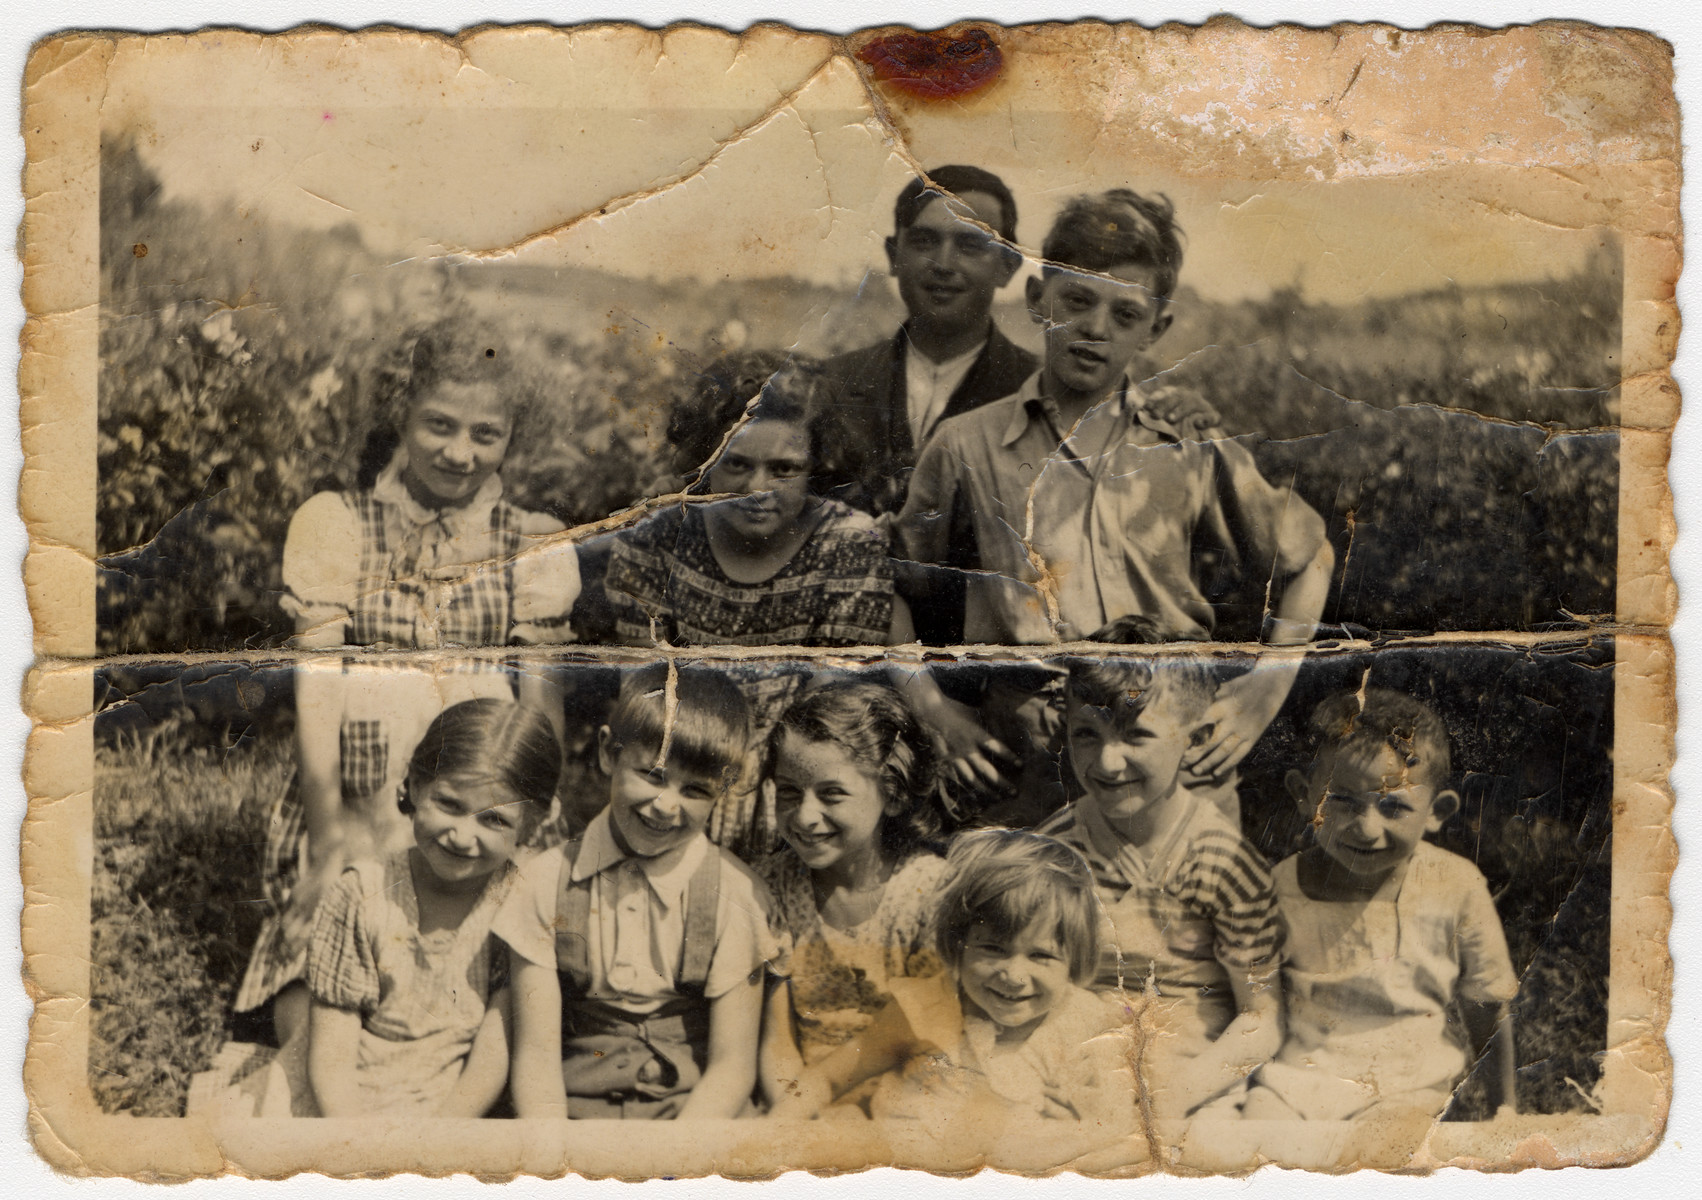 Group portrait of children in Tarnow, Poland.  Cesia Honig is pictured in the upper row on the far left.